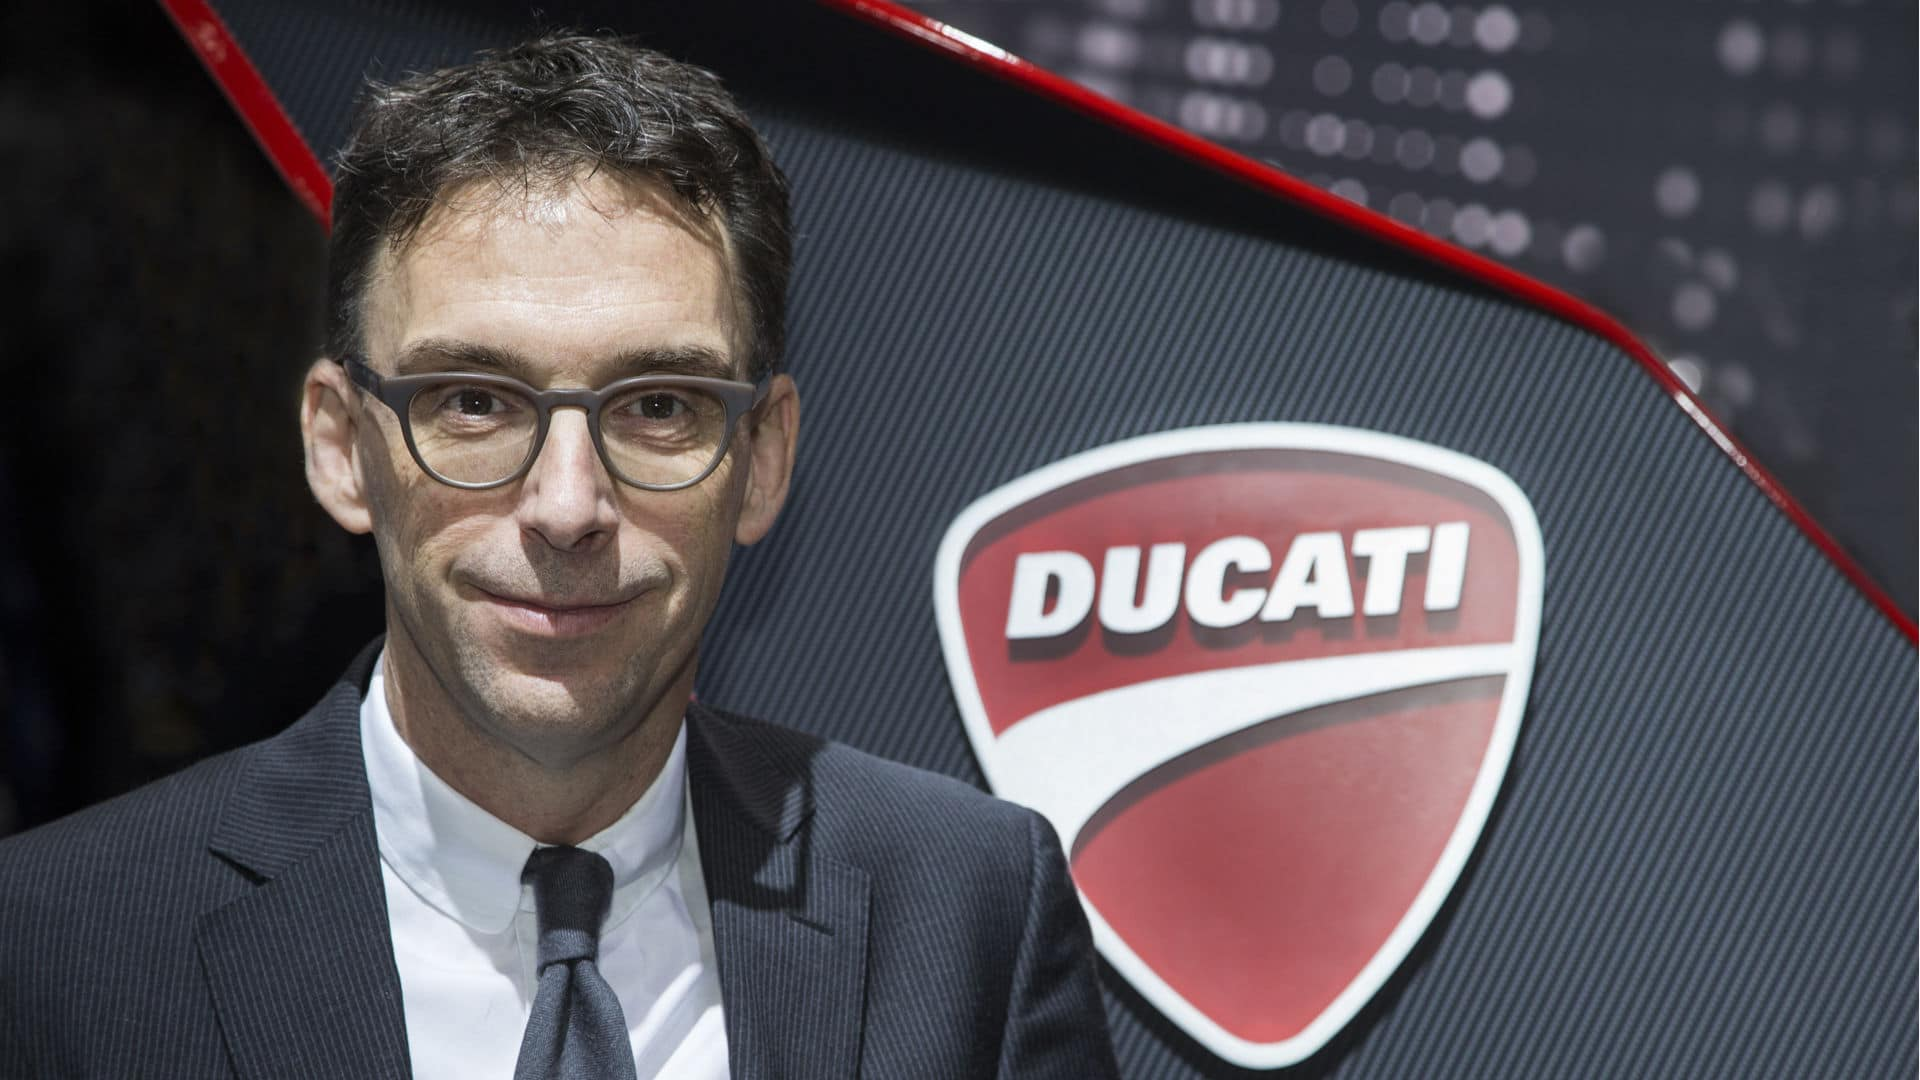 André Stoffels, CFO of Ducati Motor Holding